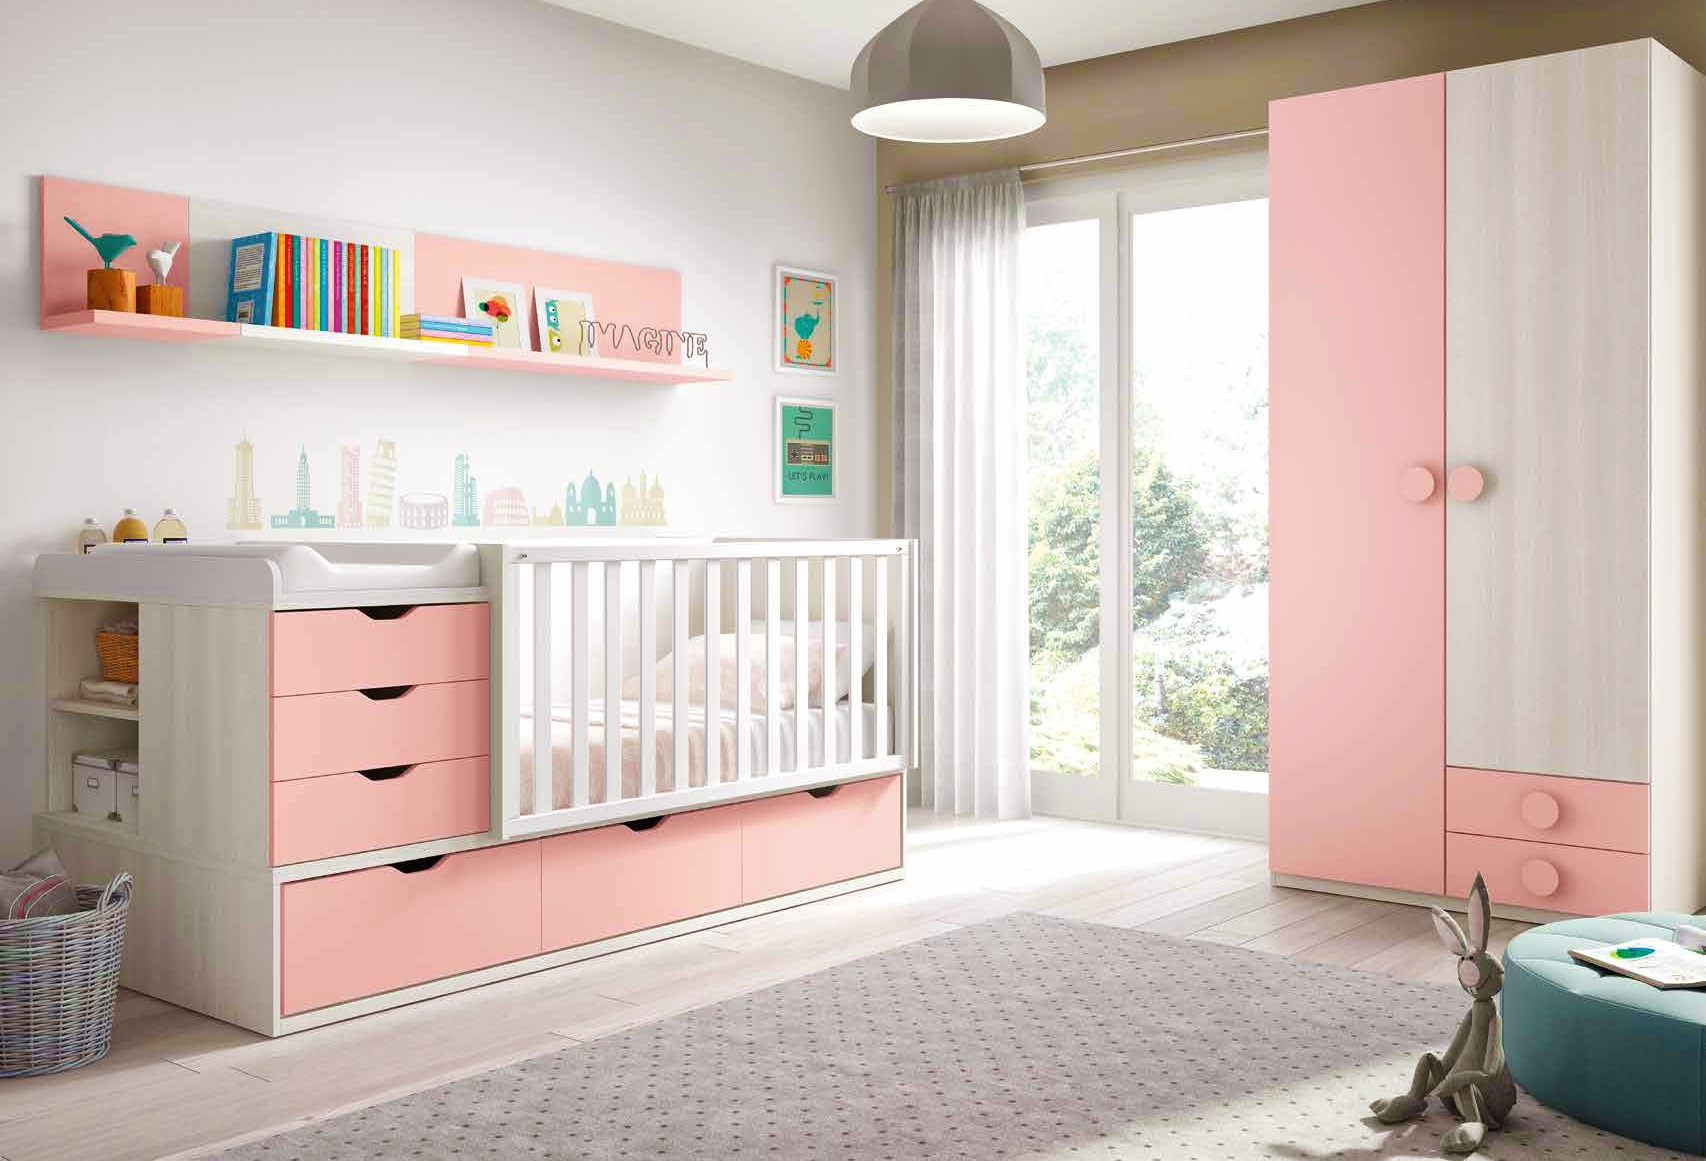 Chambre de b b fille compl te avec lit volutif for Photo de lit pour fille